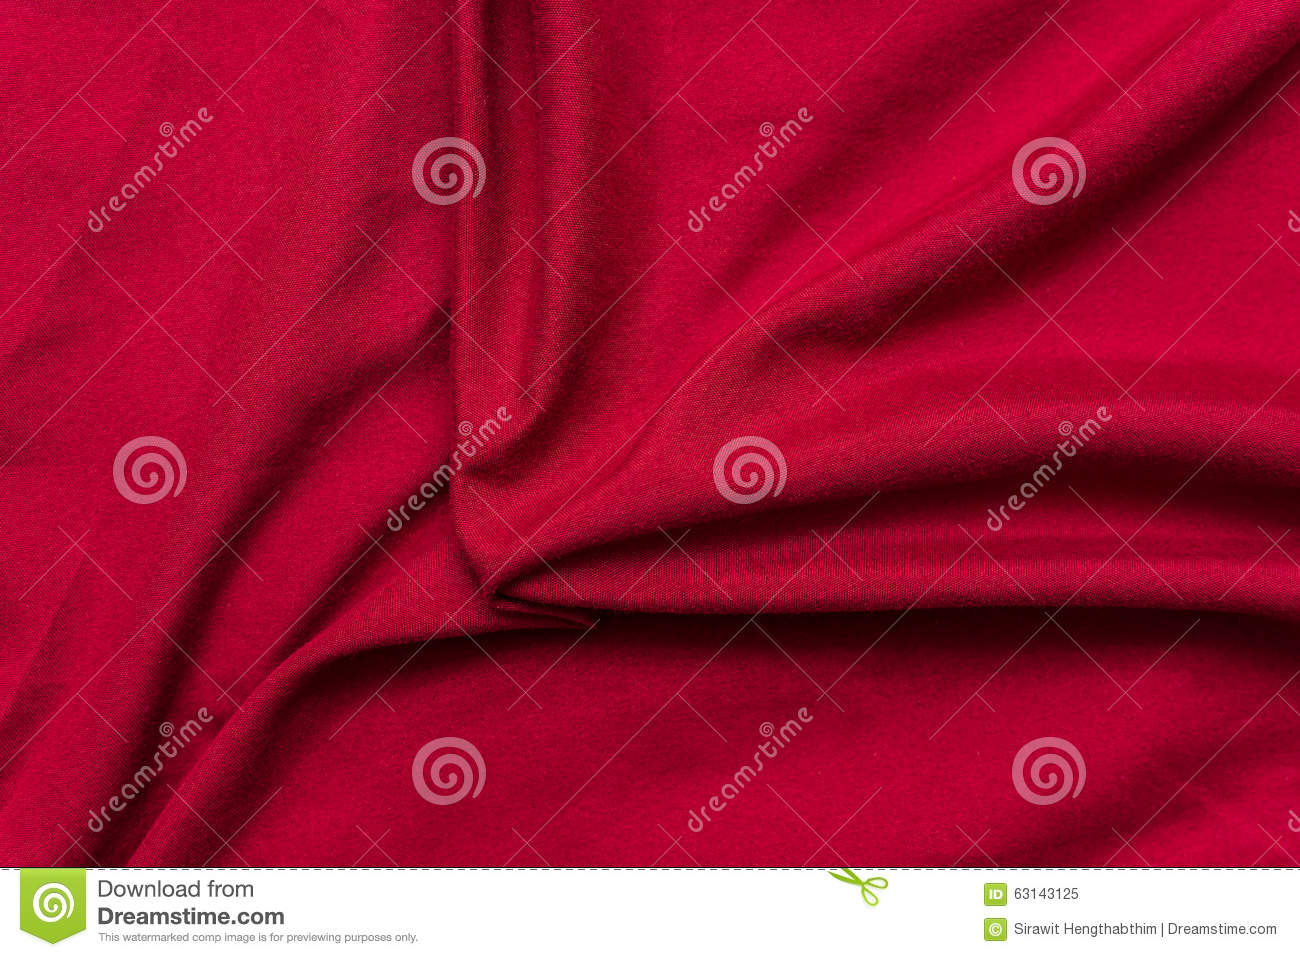 Red bed sheet texture - Red Bed Sheets Background Texture